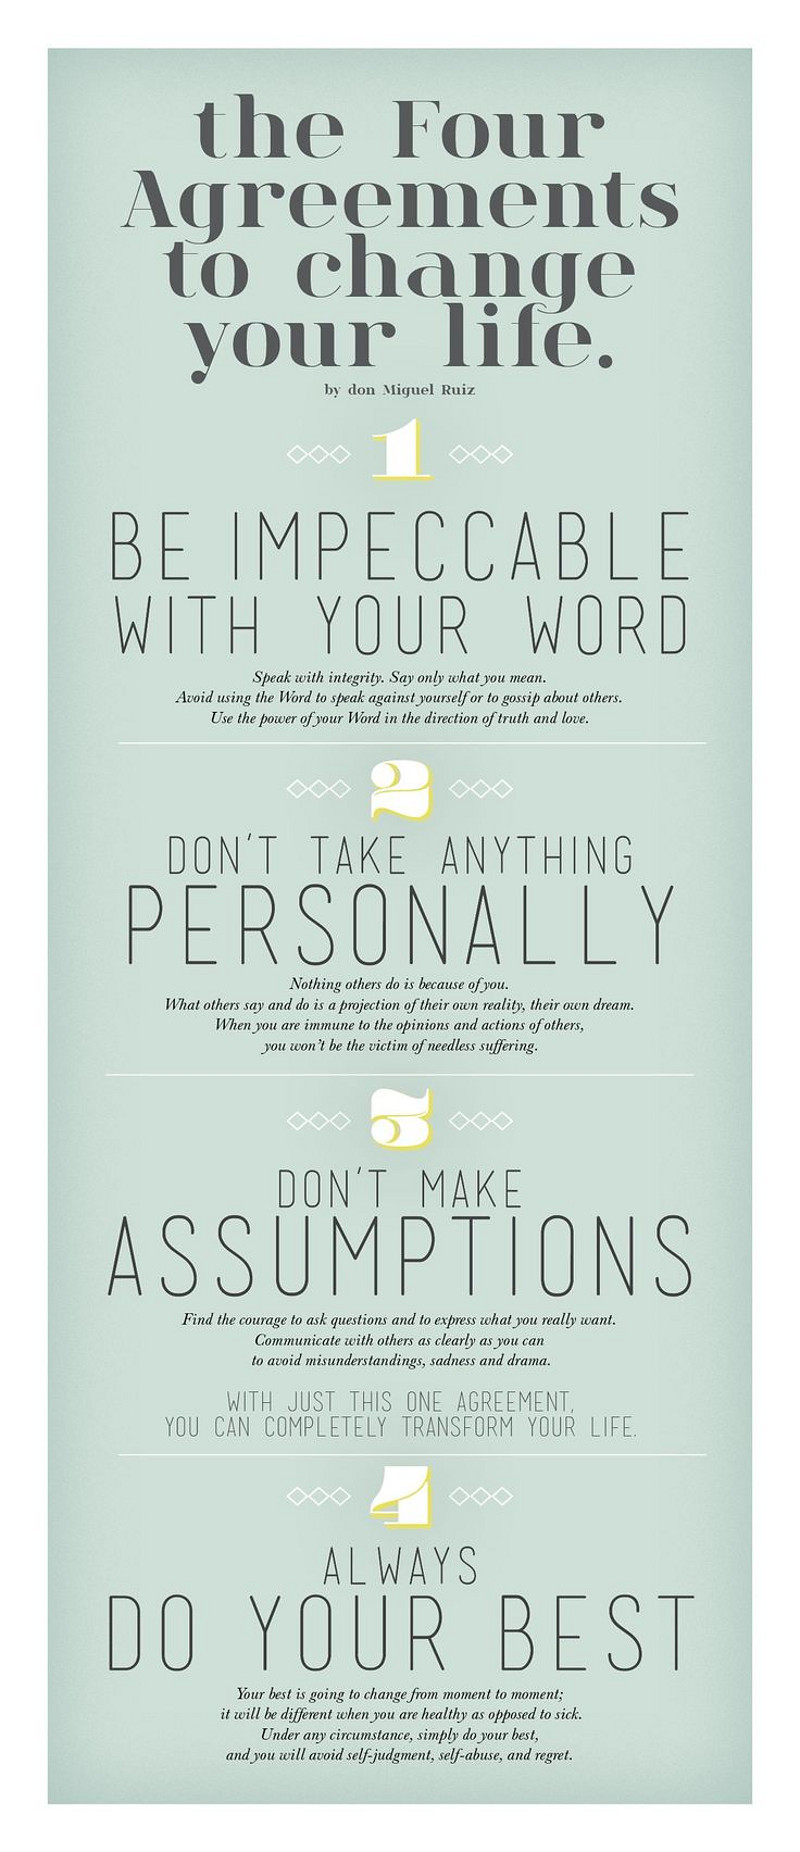 The four agreements to change your life by Miguel Ruiz.